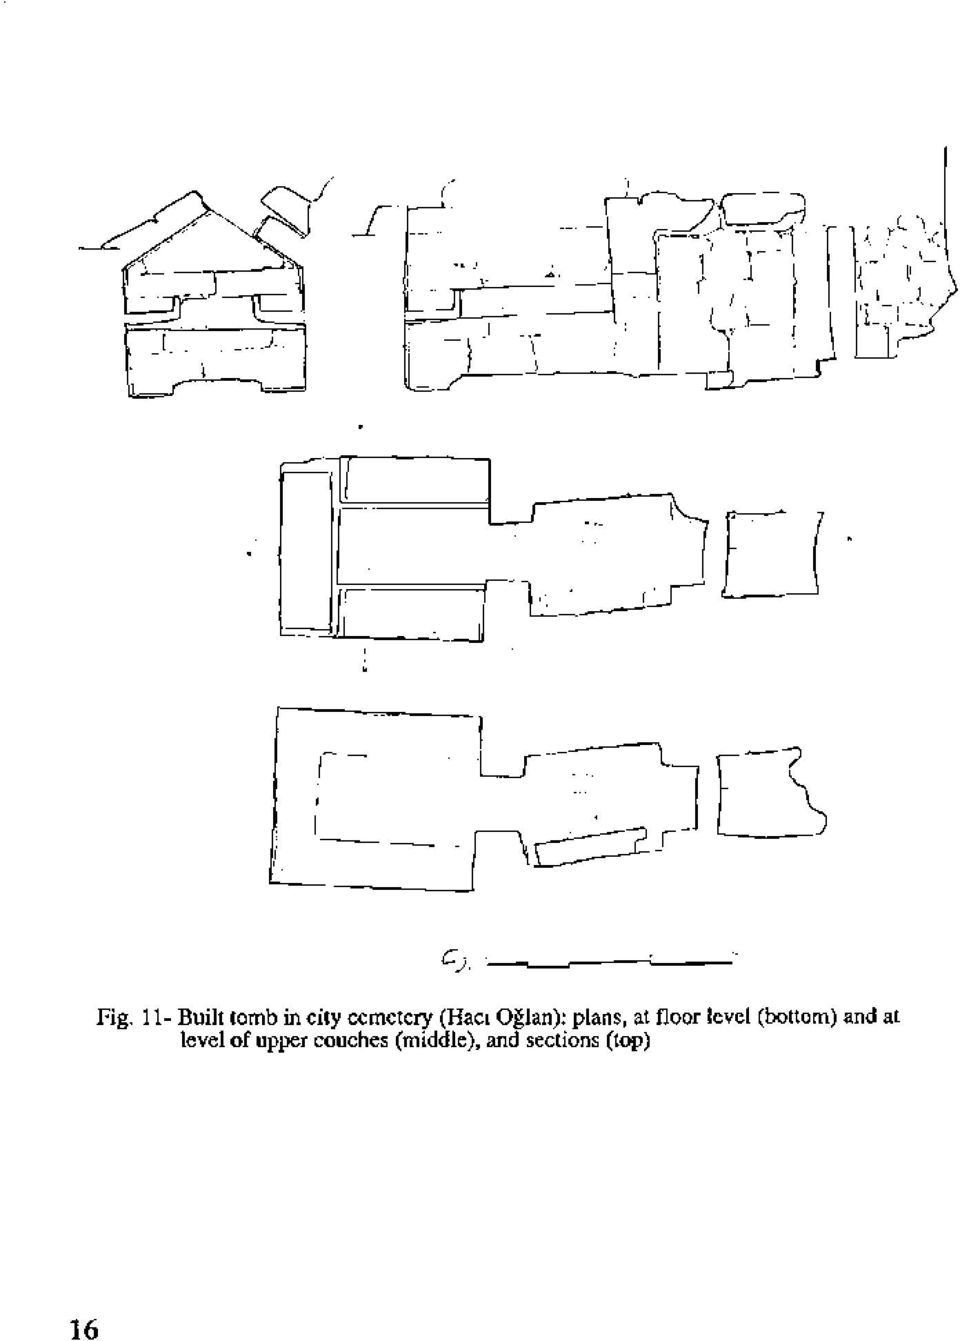 (Hacı Oğlan): plans, at floor level